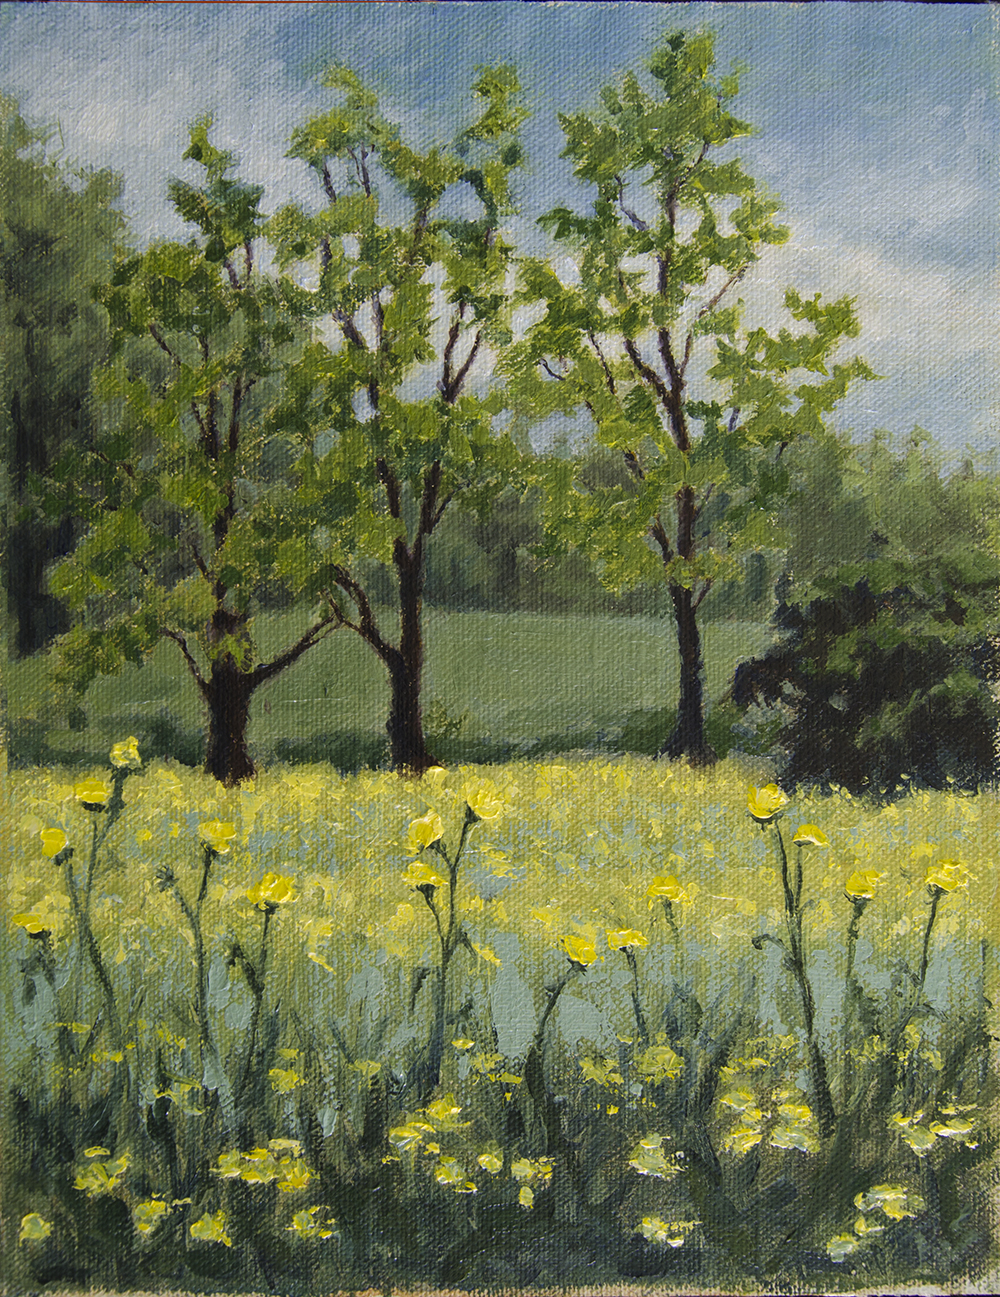 Yellow Flowers And Trees April 2016 Rachel Steely